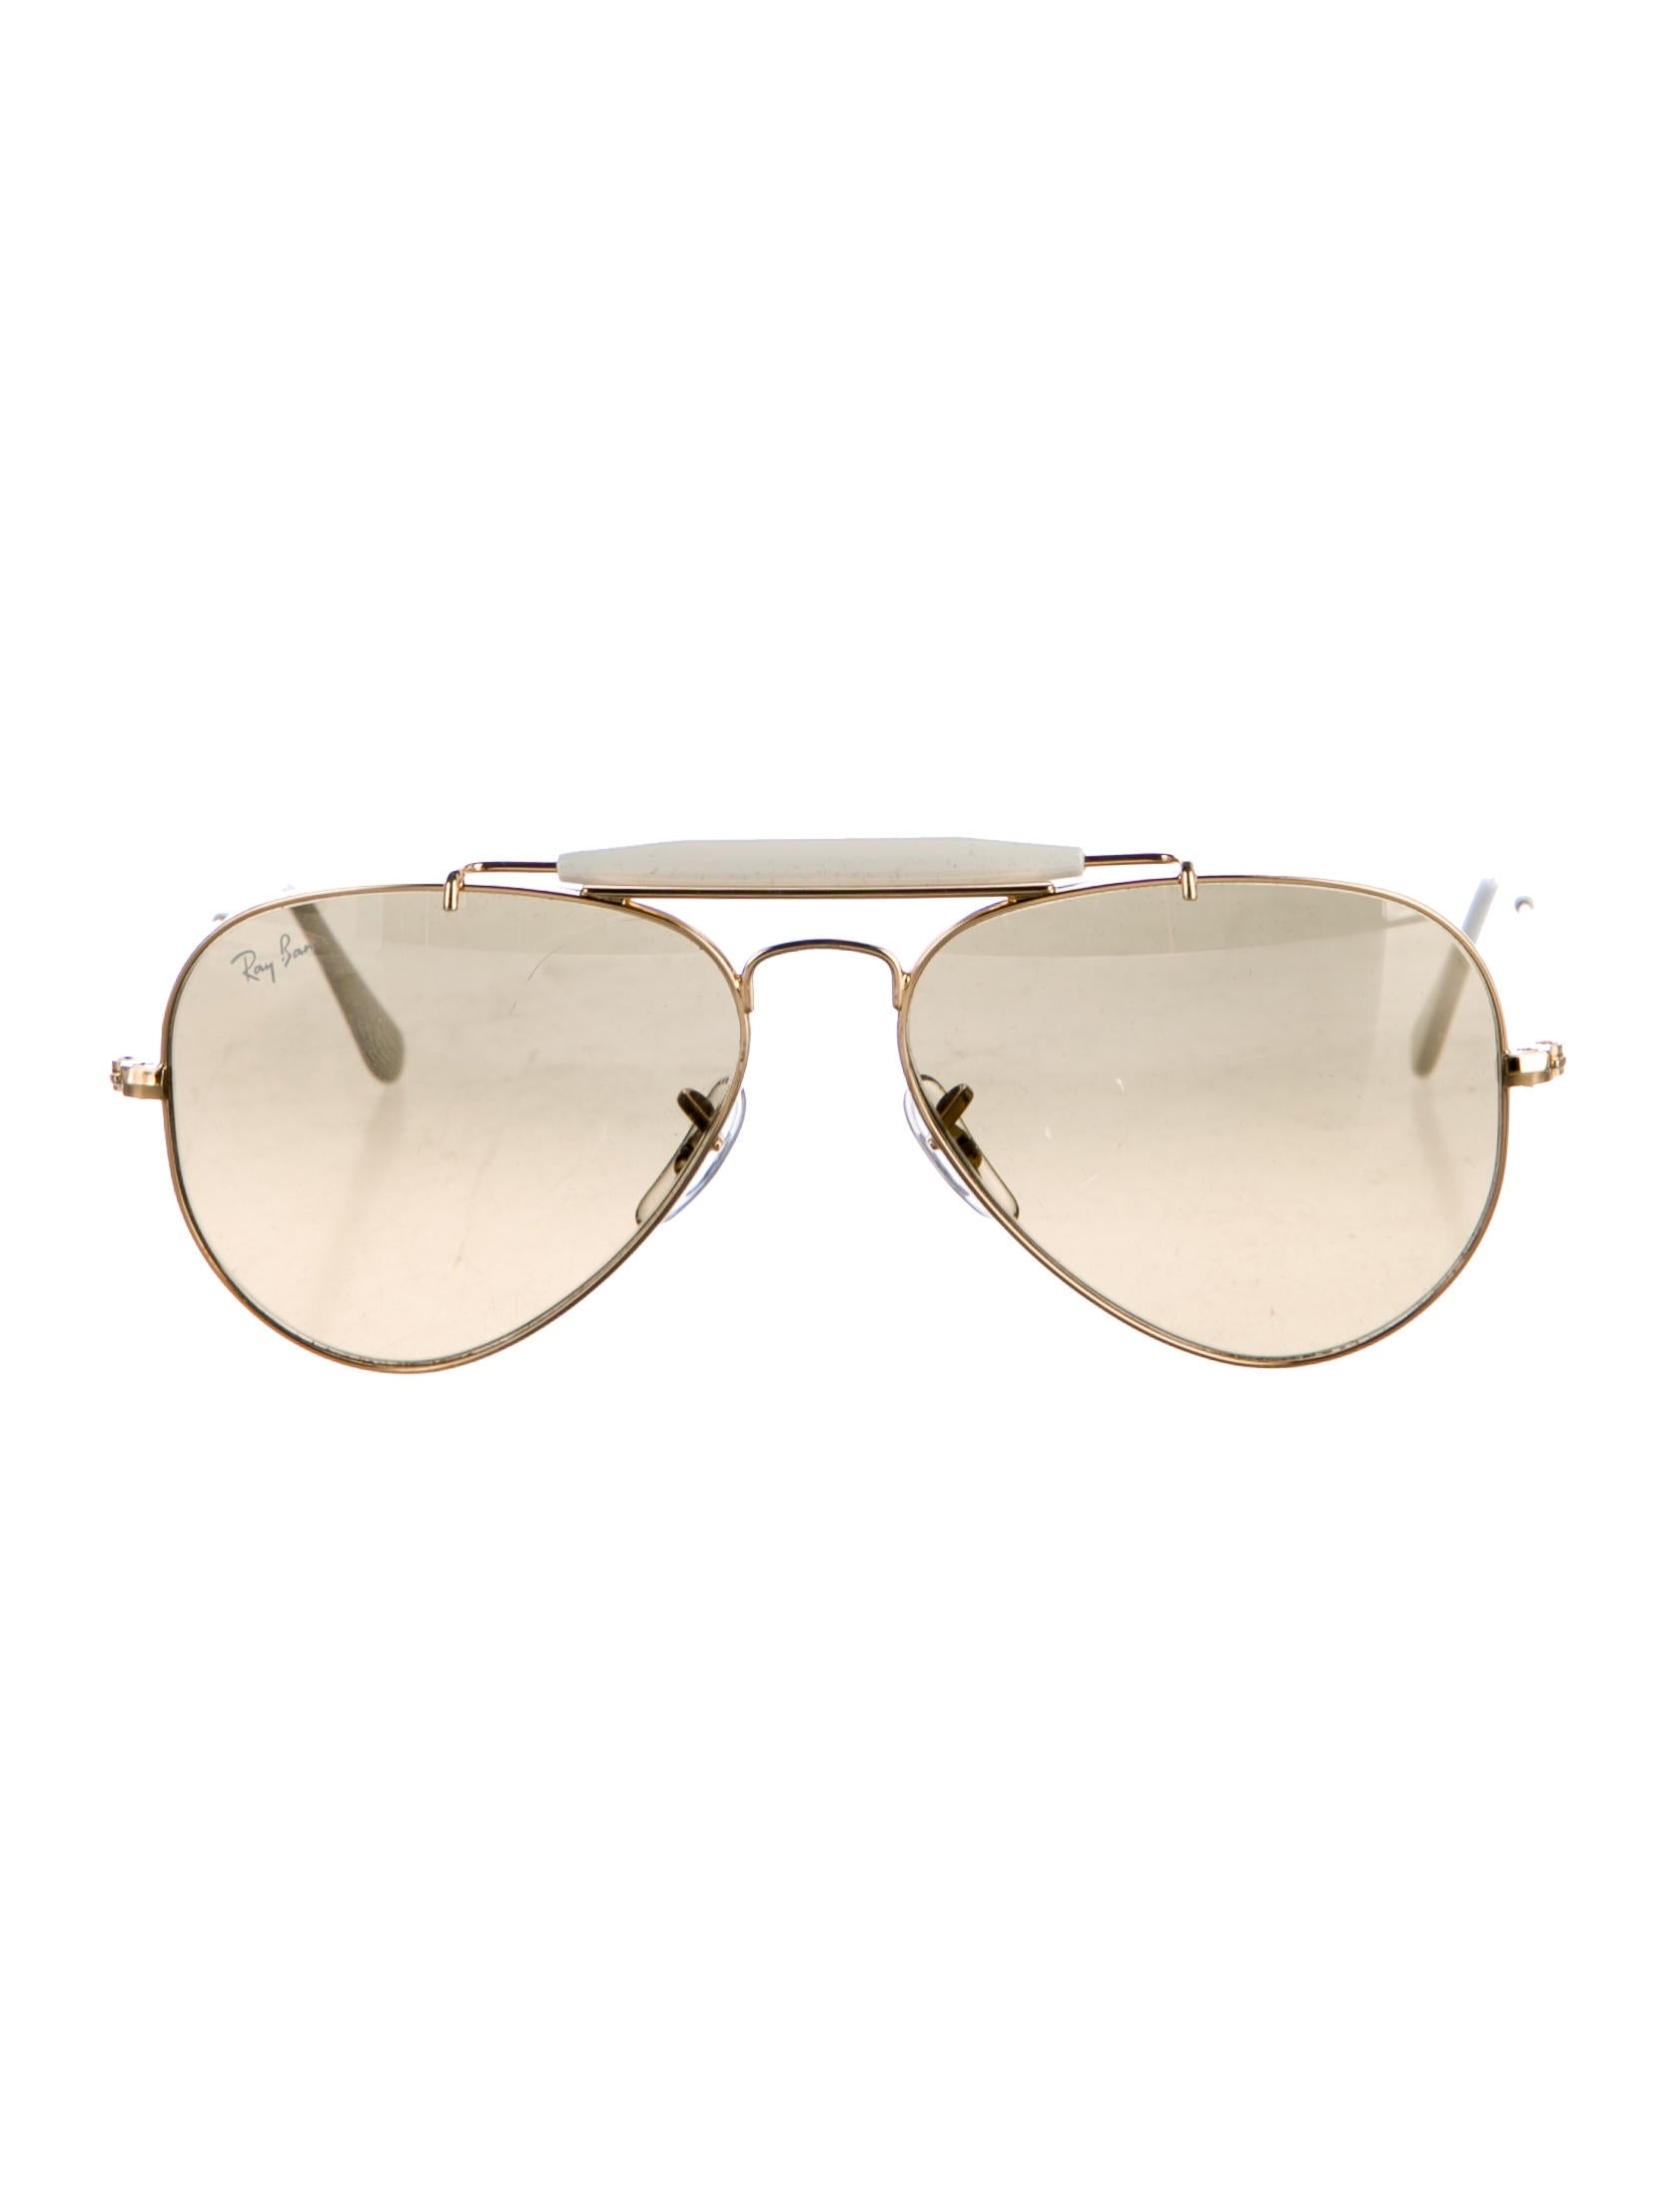 ca0e8d2a1264 Where Can I Use My Ray Ban Gift Card